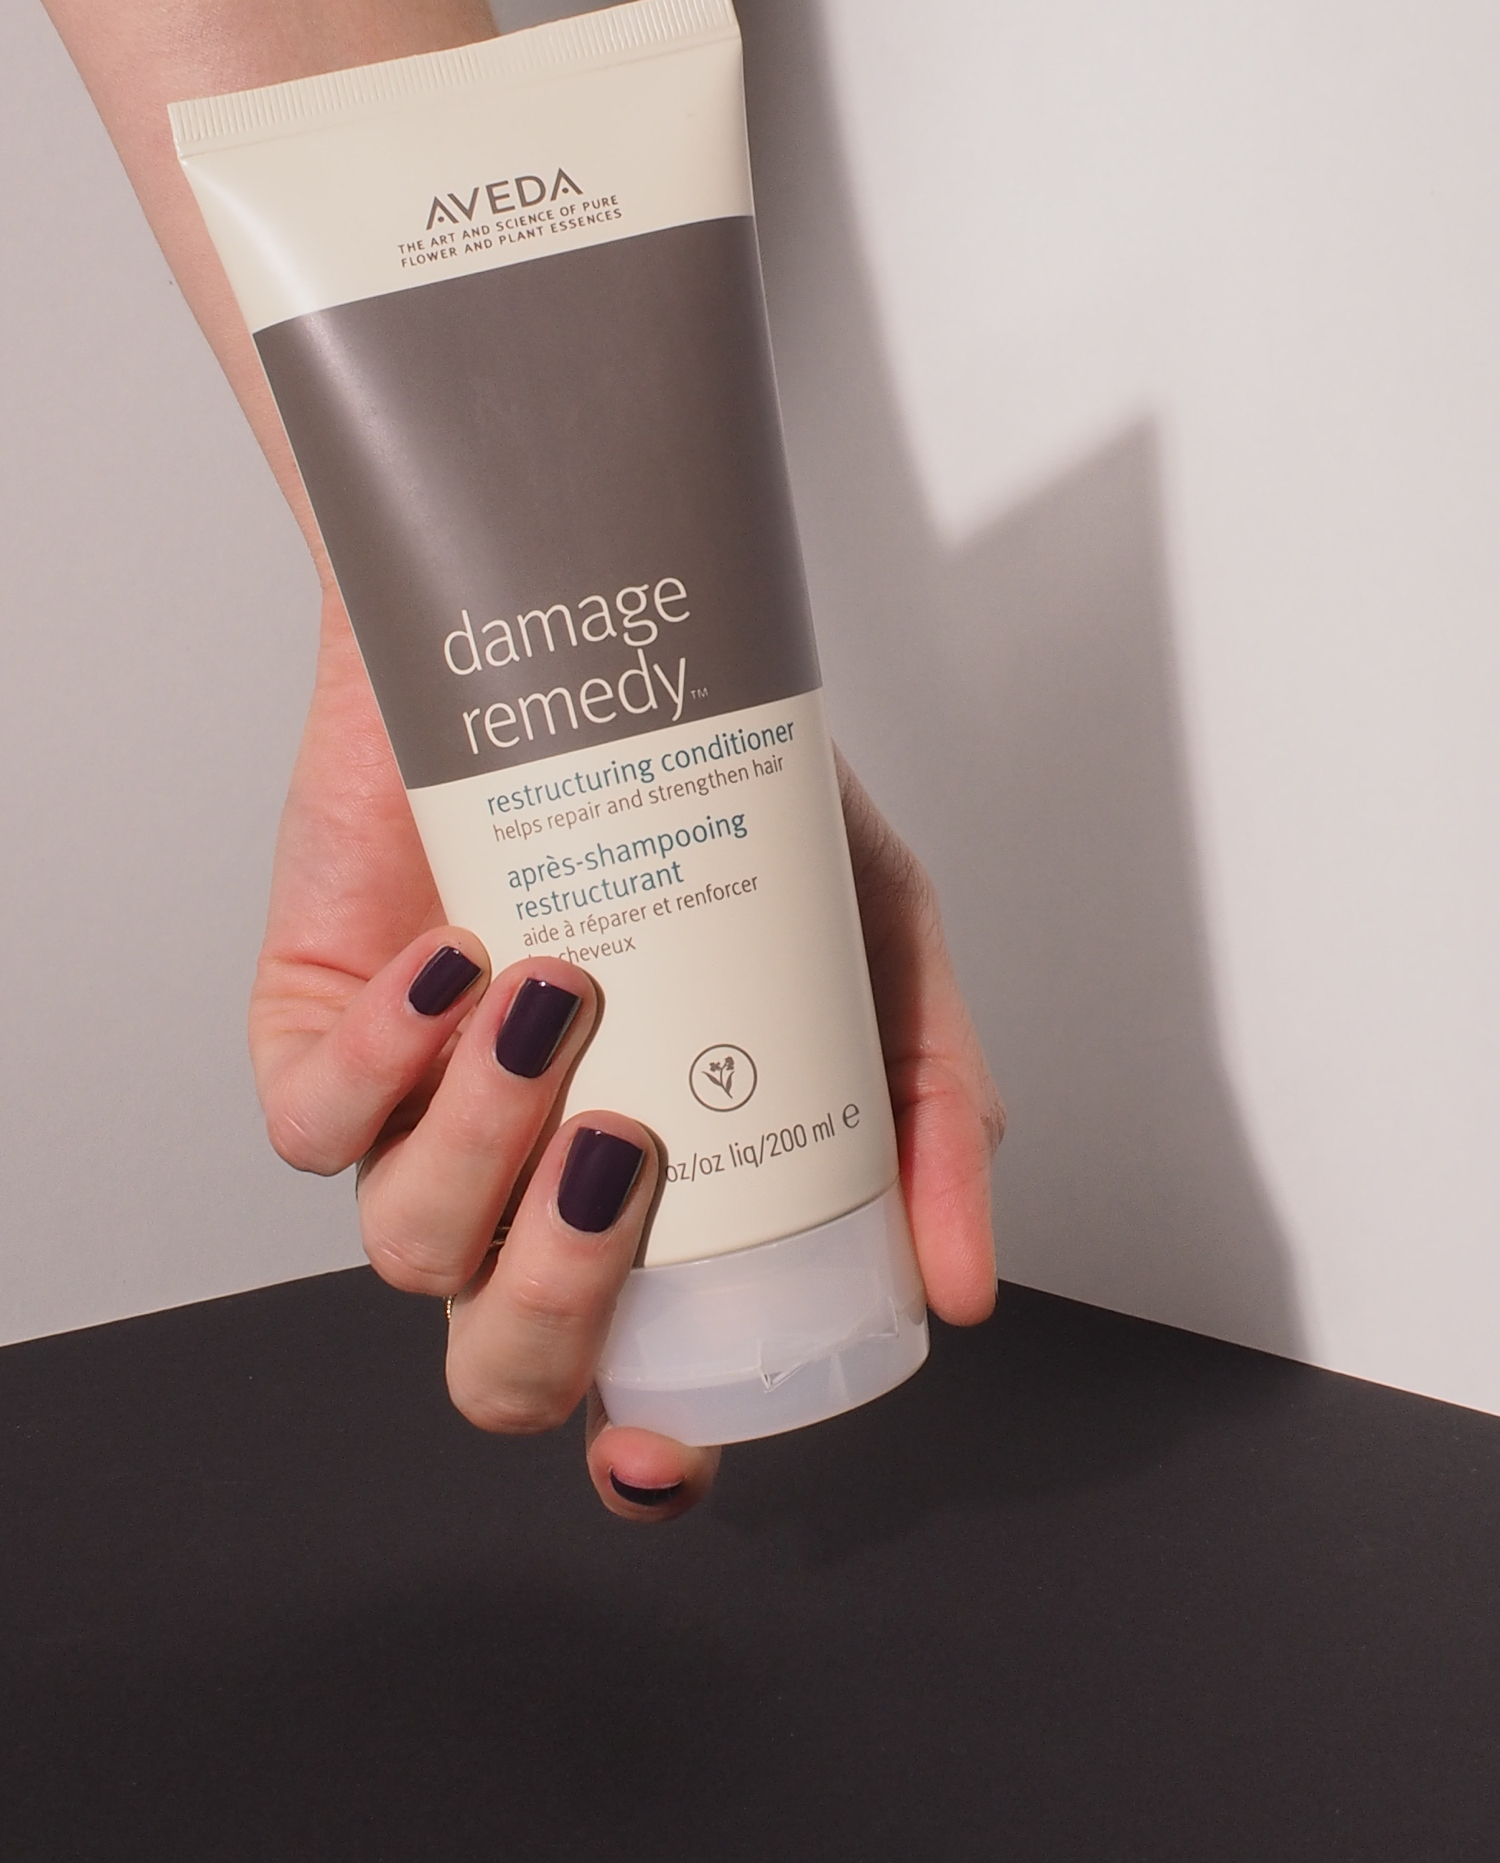 Beautyblog-Beauty-Blog-bare-minds-Elina-Neumann-Aveda-Damage-Remedy-Restructuring-Conditioner